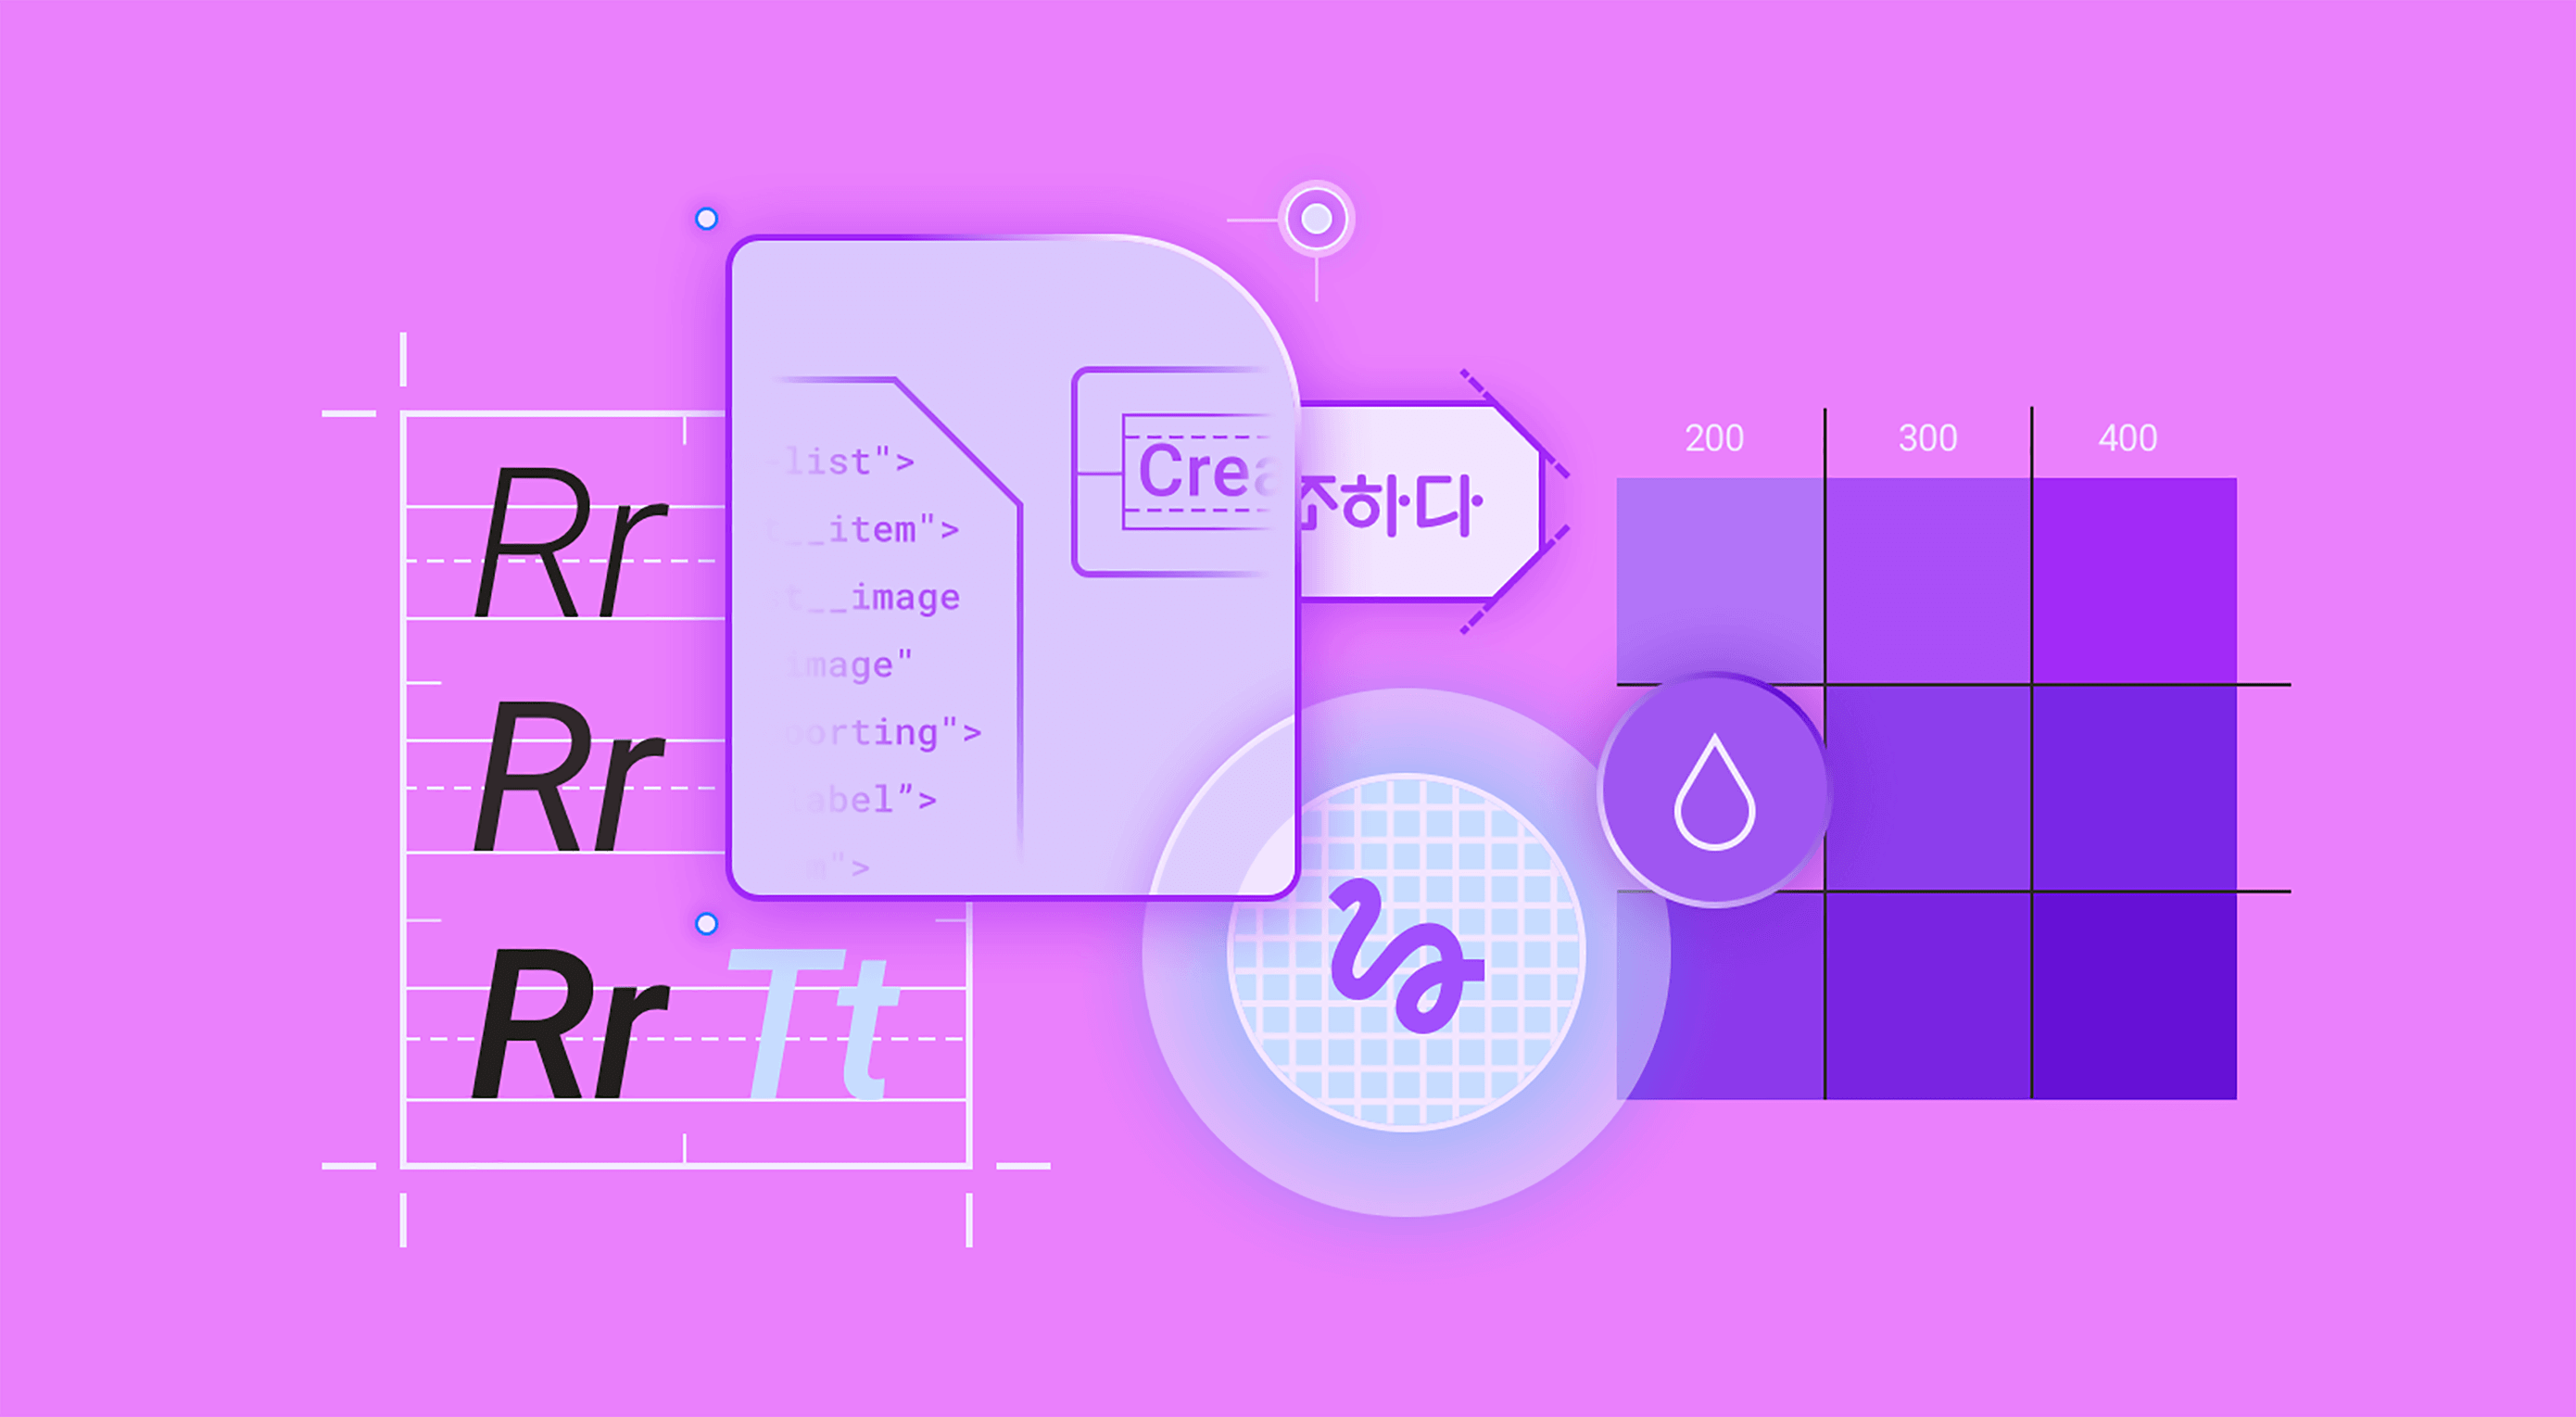 Why Don't We Just Use Material Design?